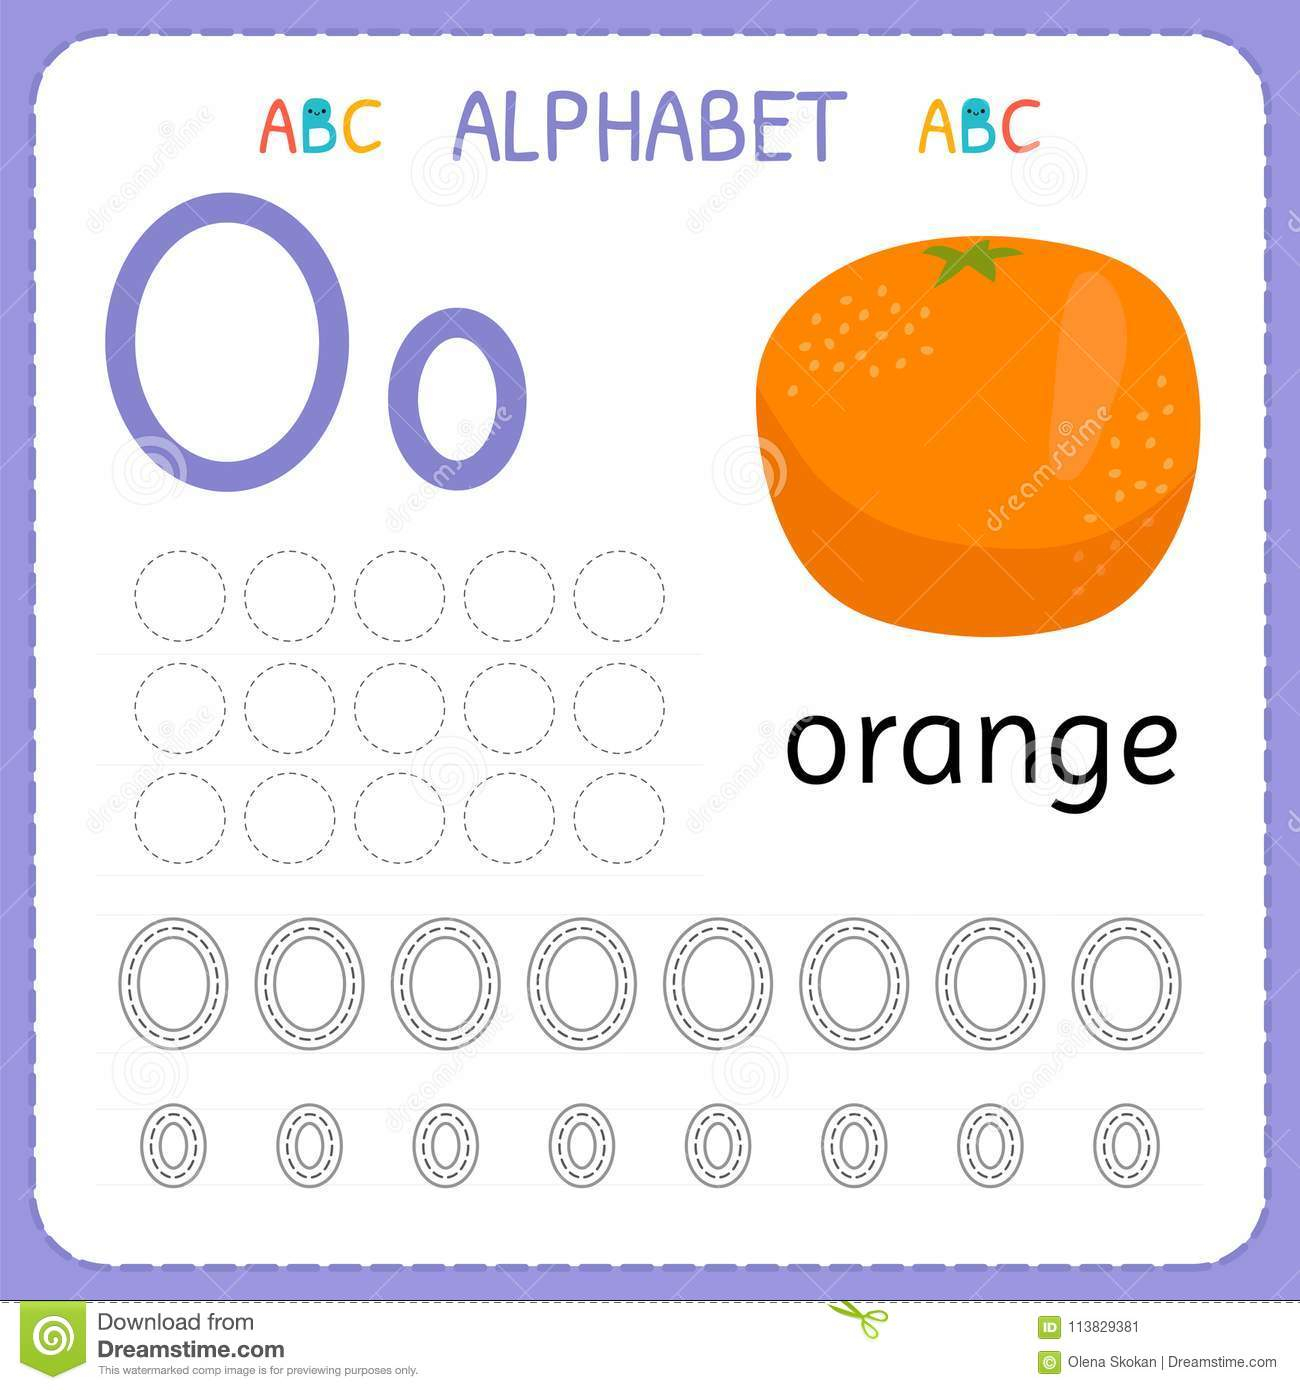 Alphabet Tracing Worksheet For Preschool And Kindergarten regarding Letter O Worksheets For Kindergarten Free